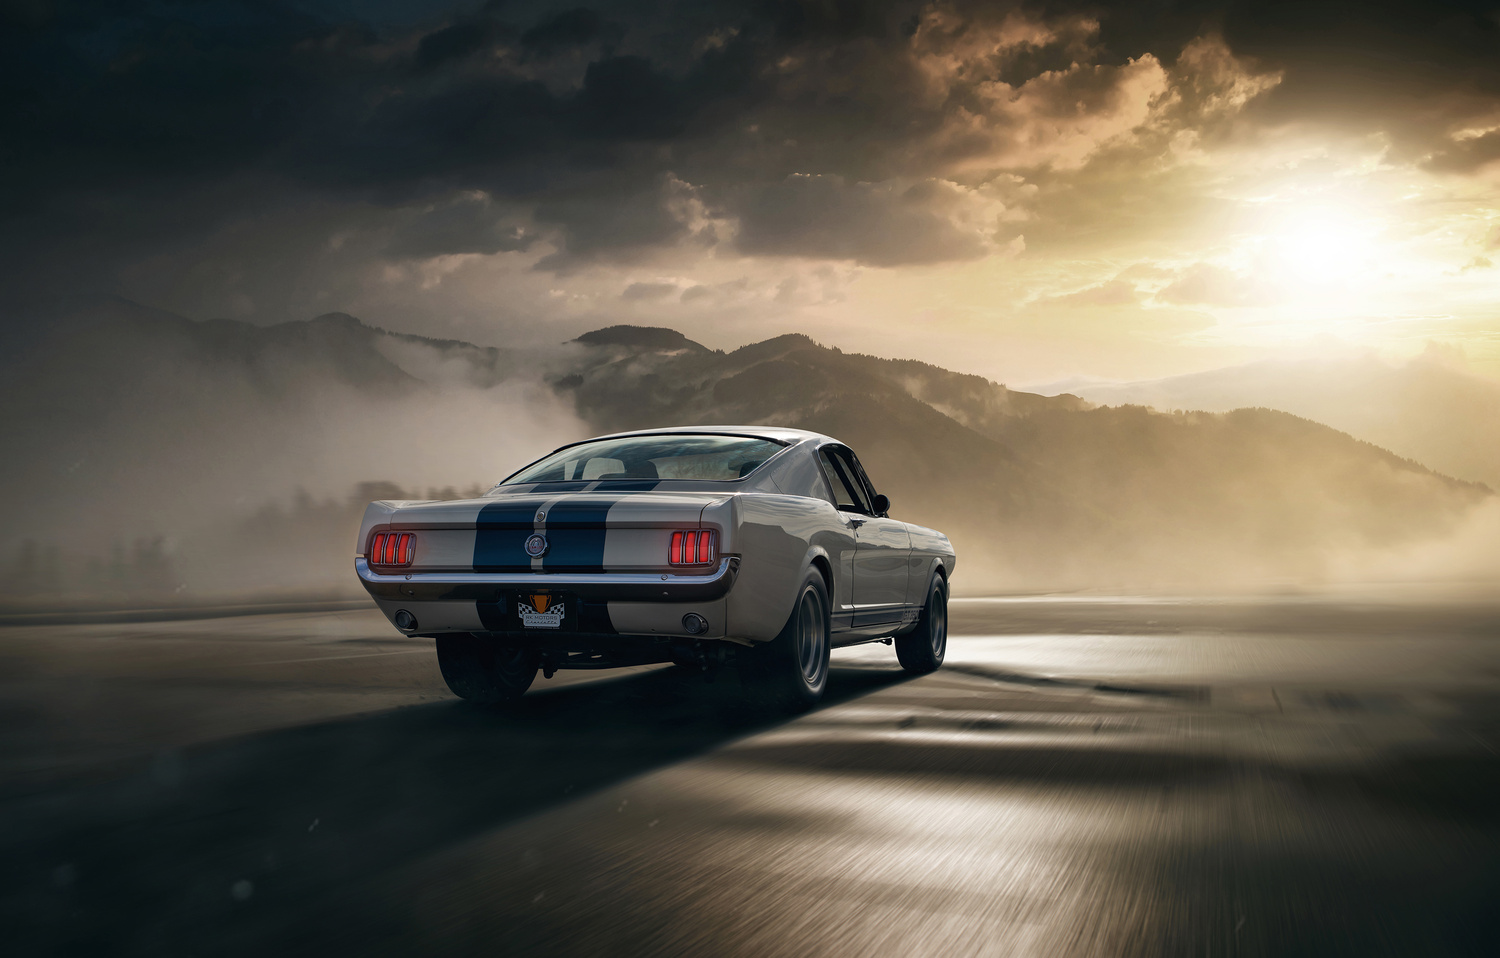 1965 Shelby GT350 by Dominic Mann